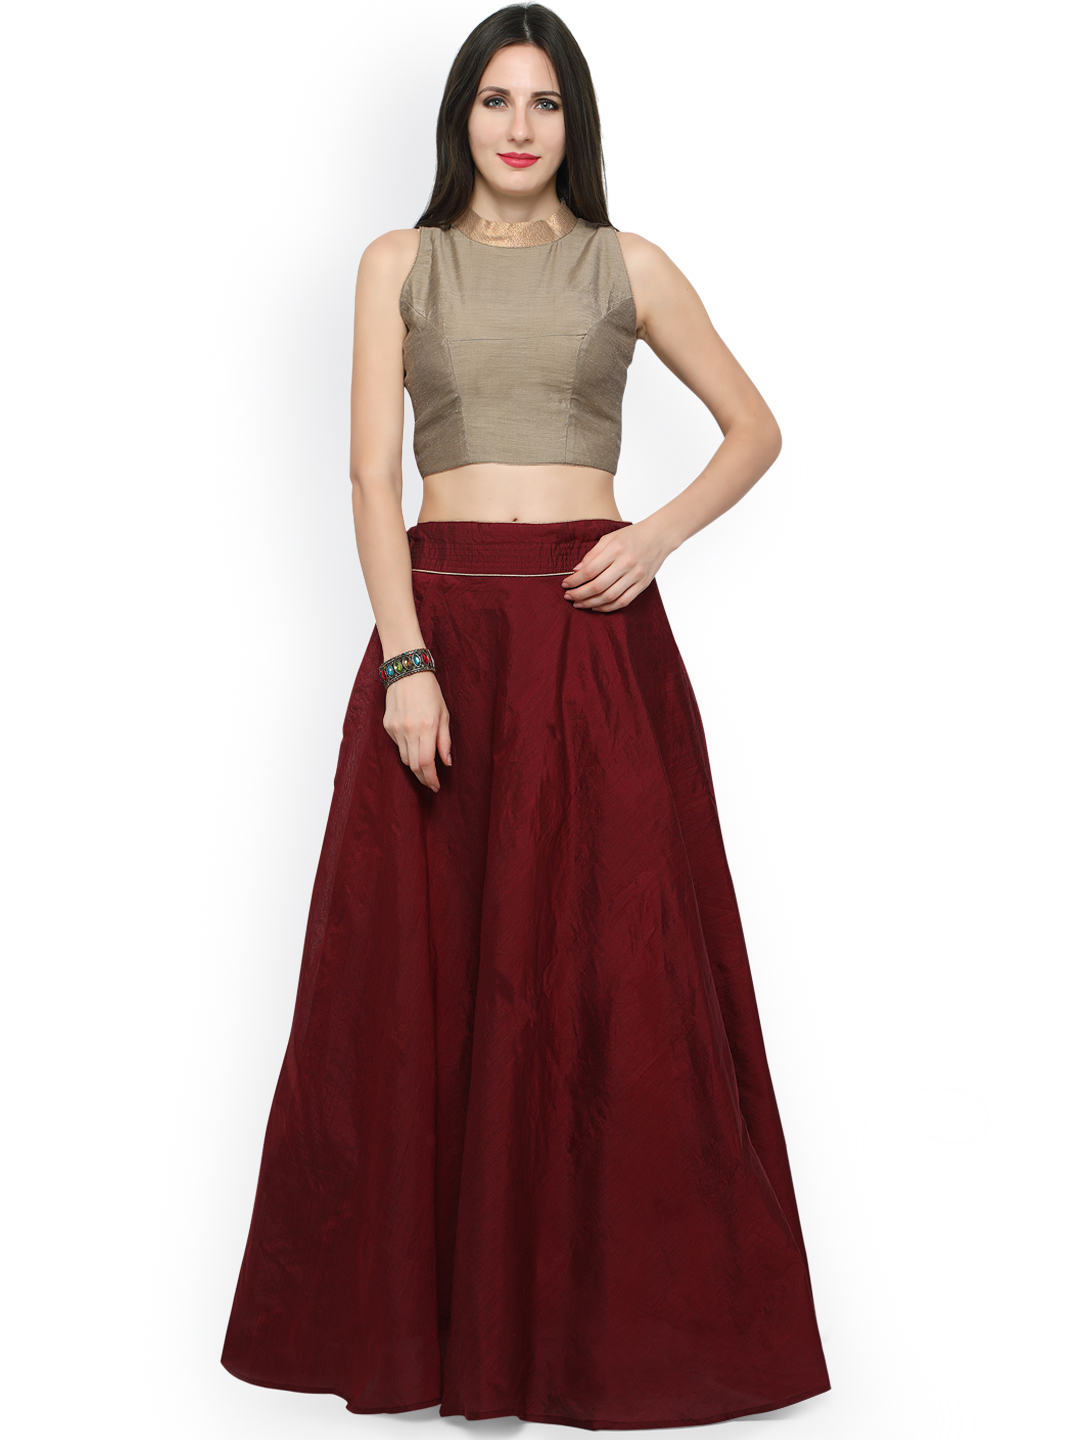 Inddus Maroon & Beige Chanderi Cotton Semi-Stitched Lehenga Choli Price in India